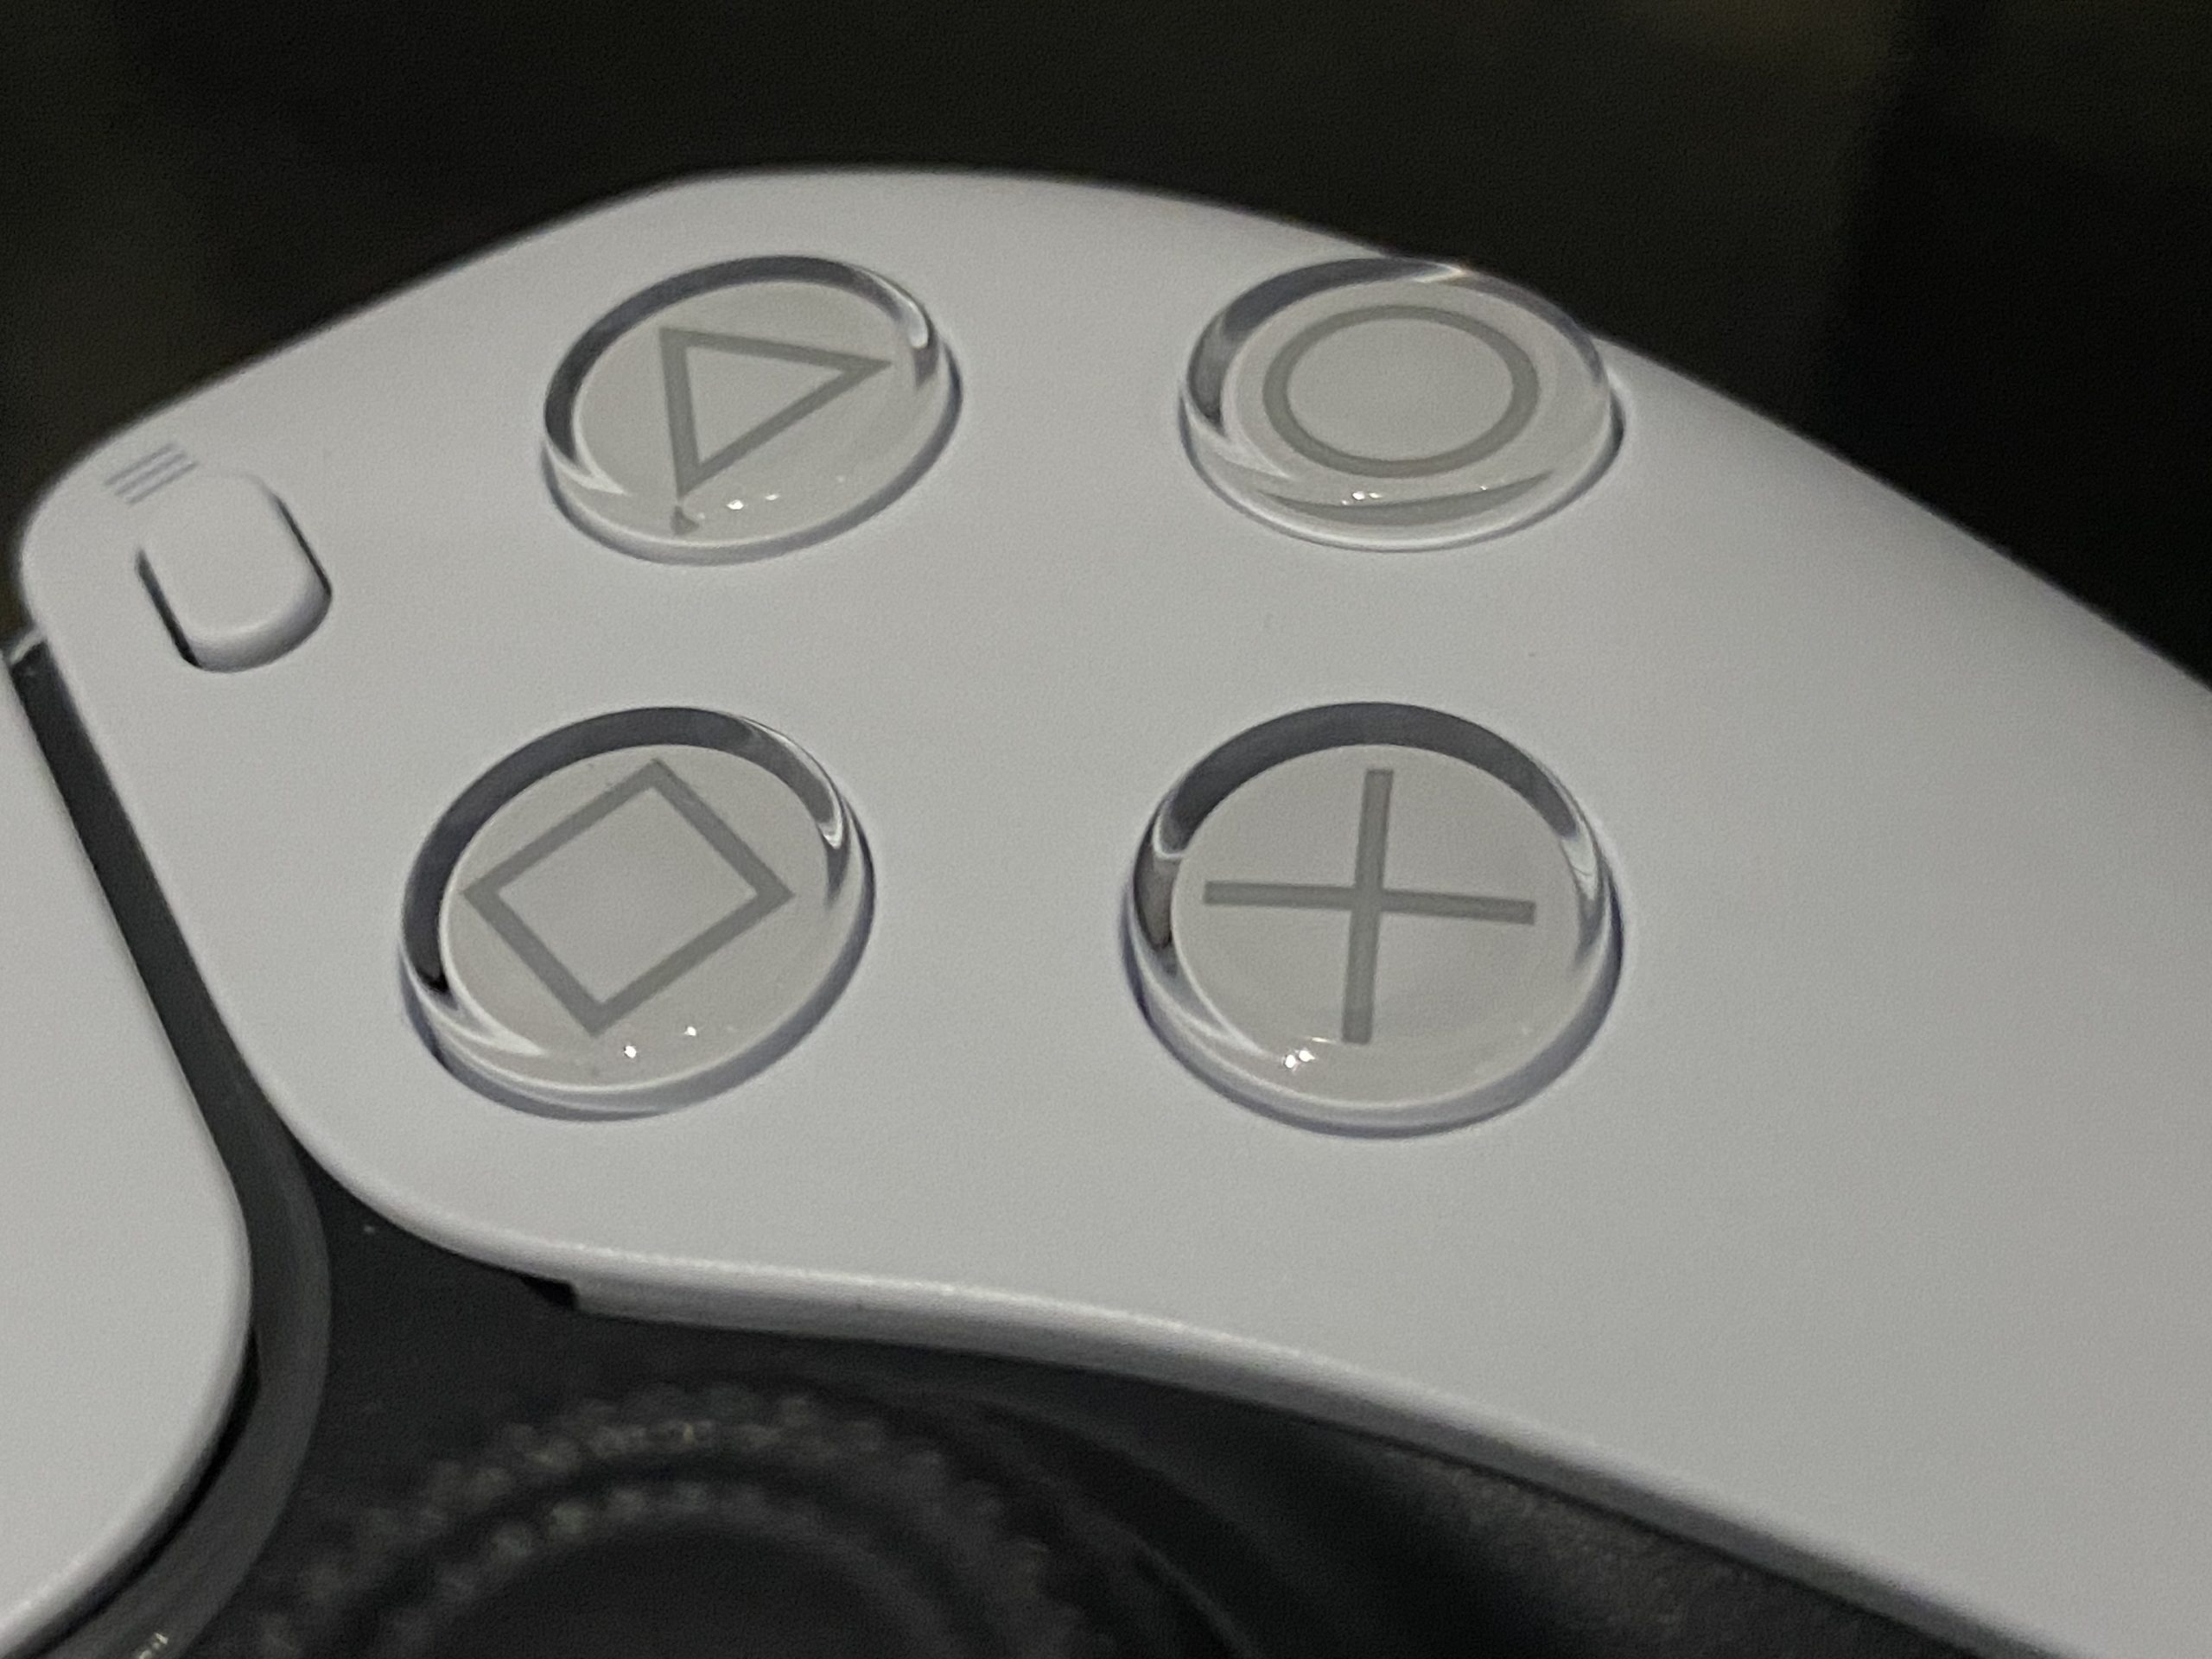 Late PlayStation 5 Review